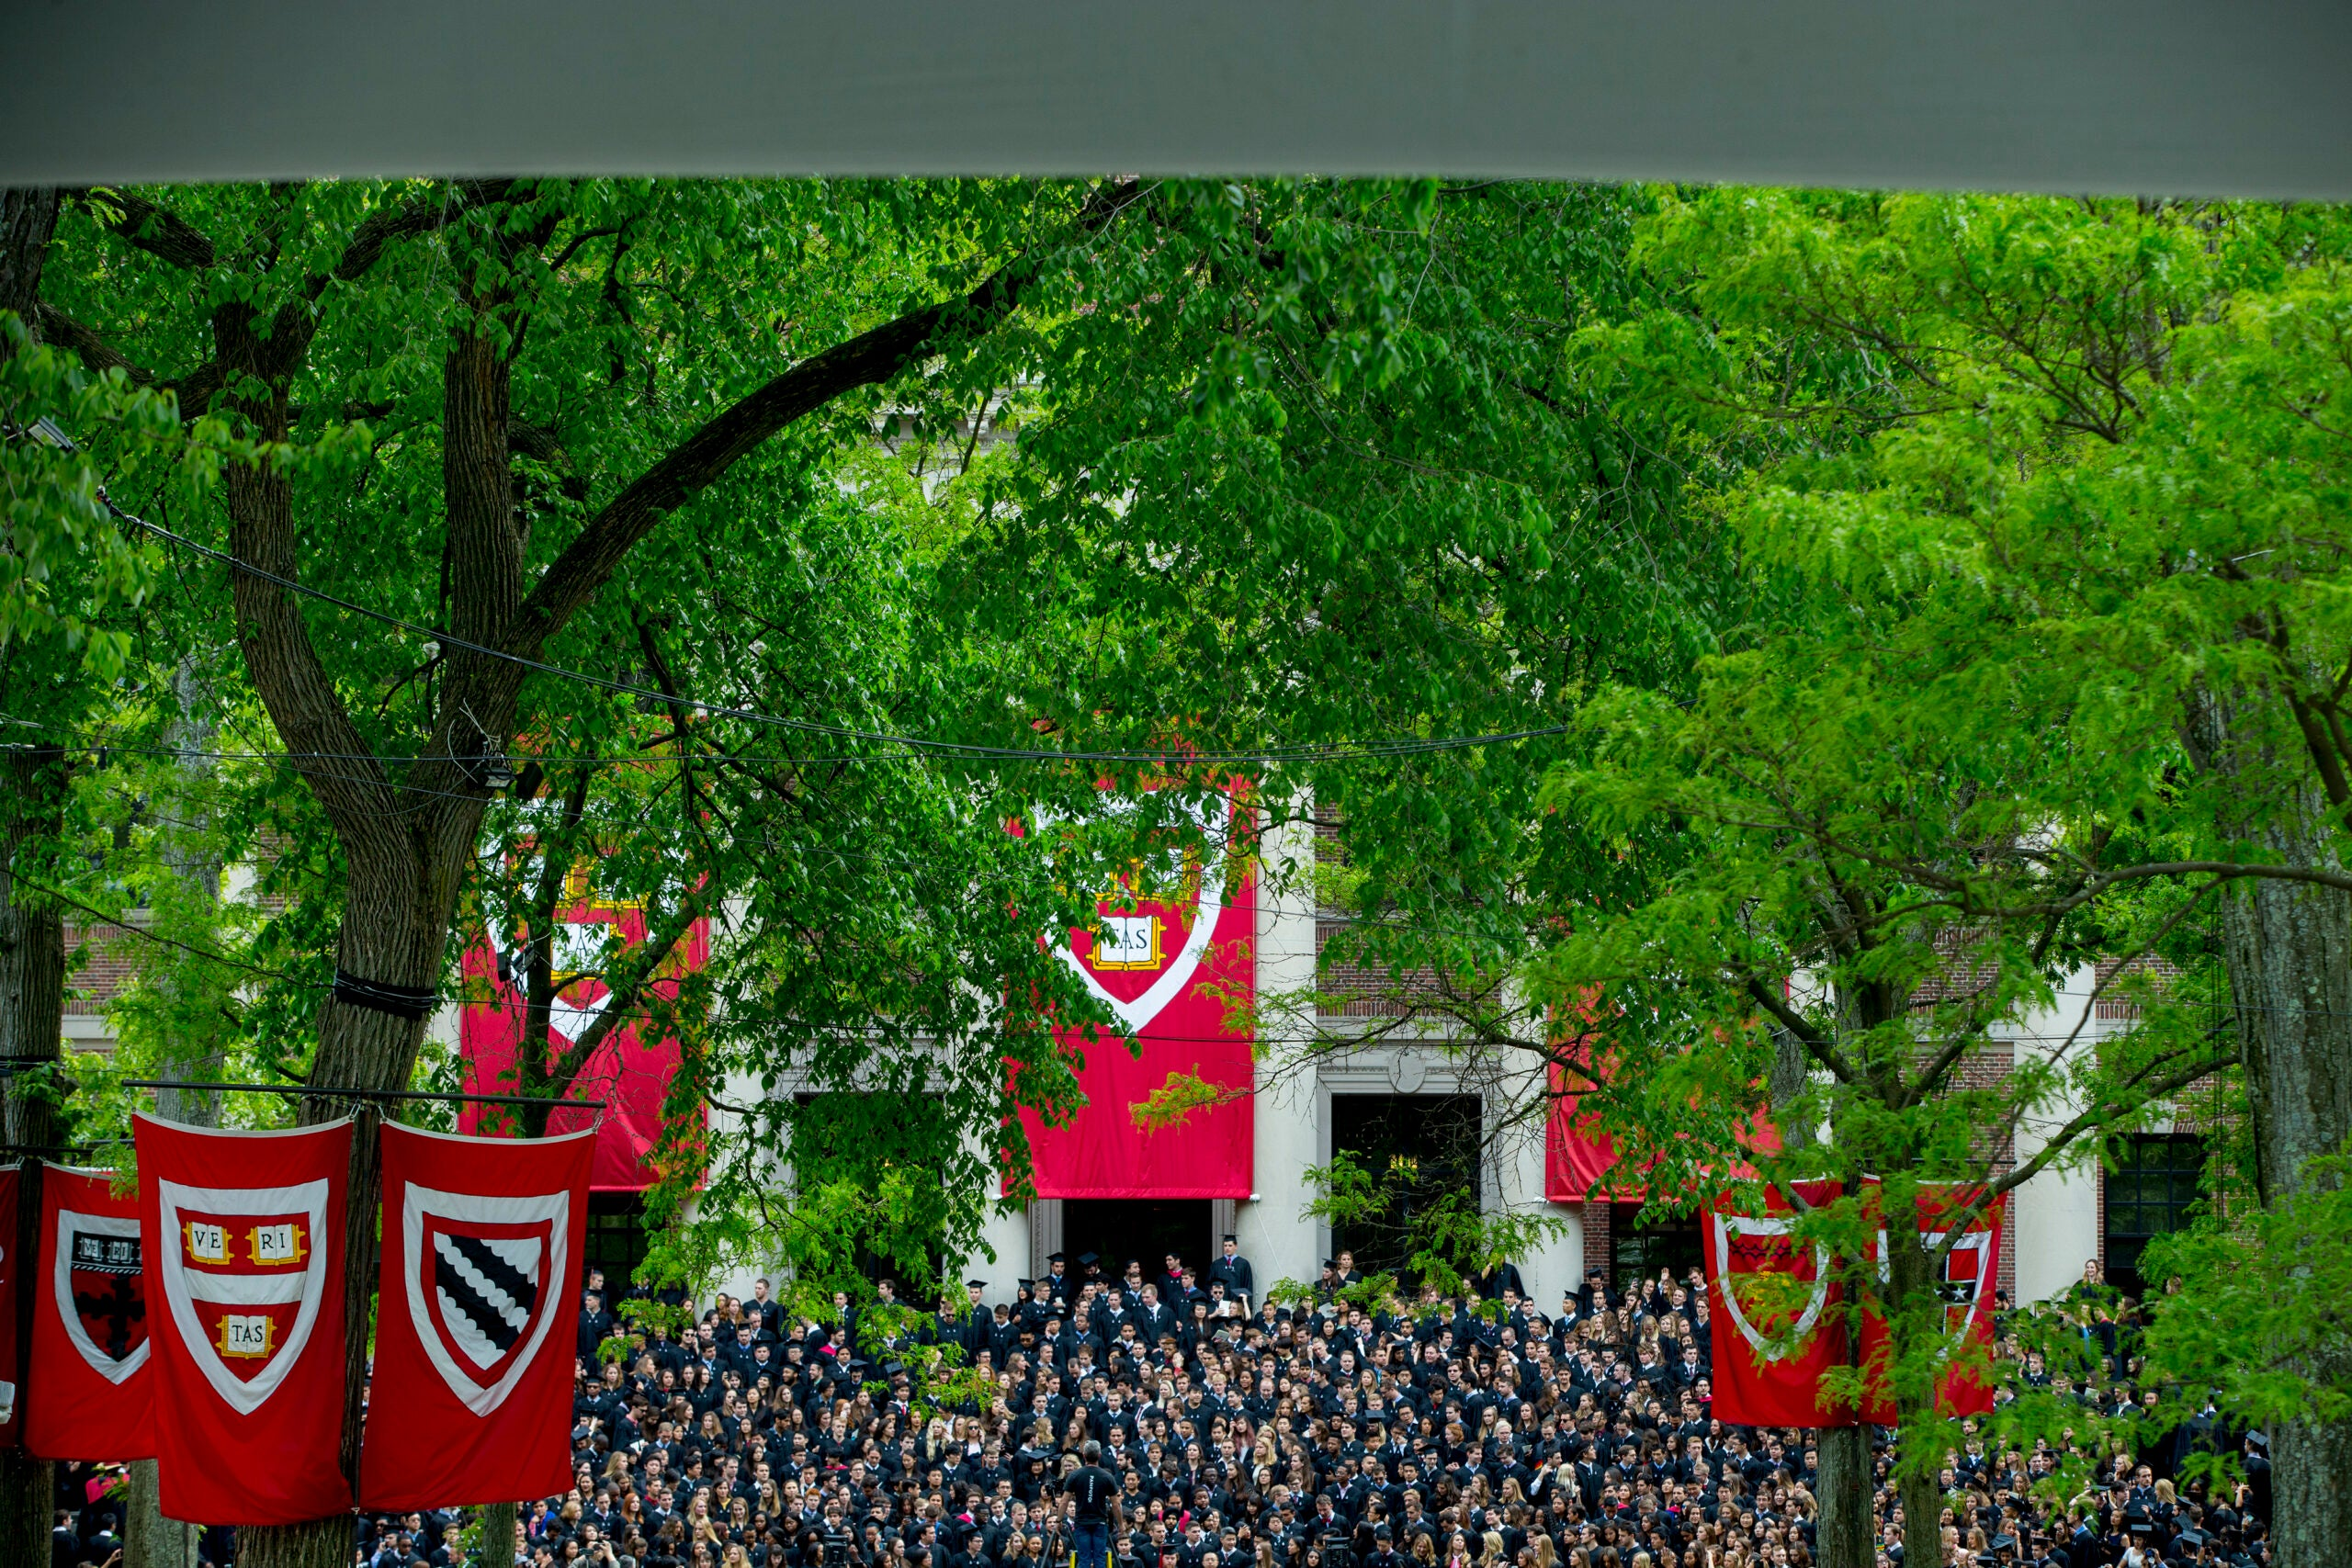 A commencement in Harvard Yard